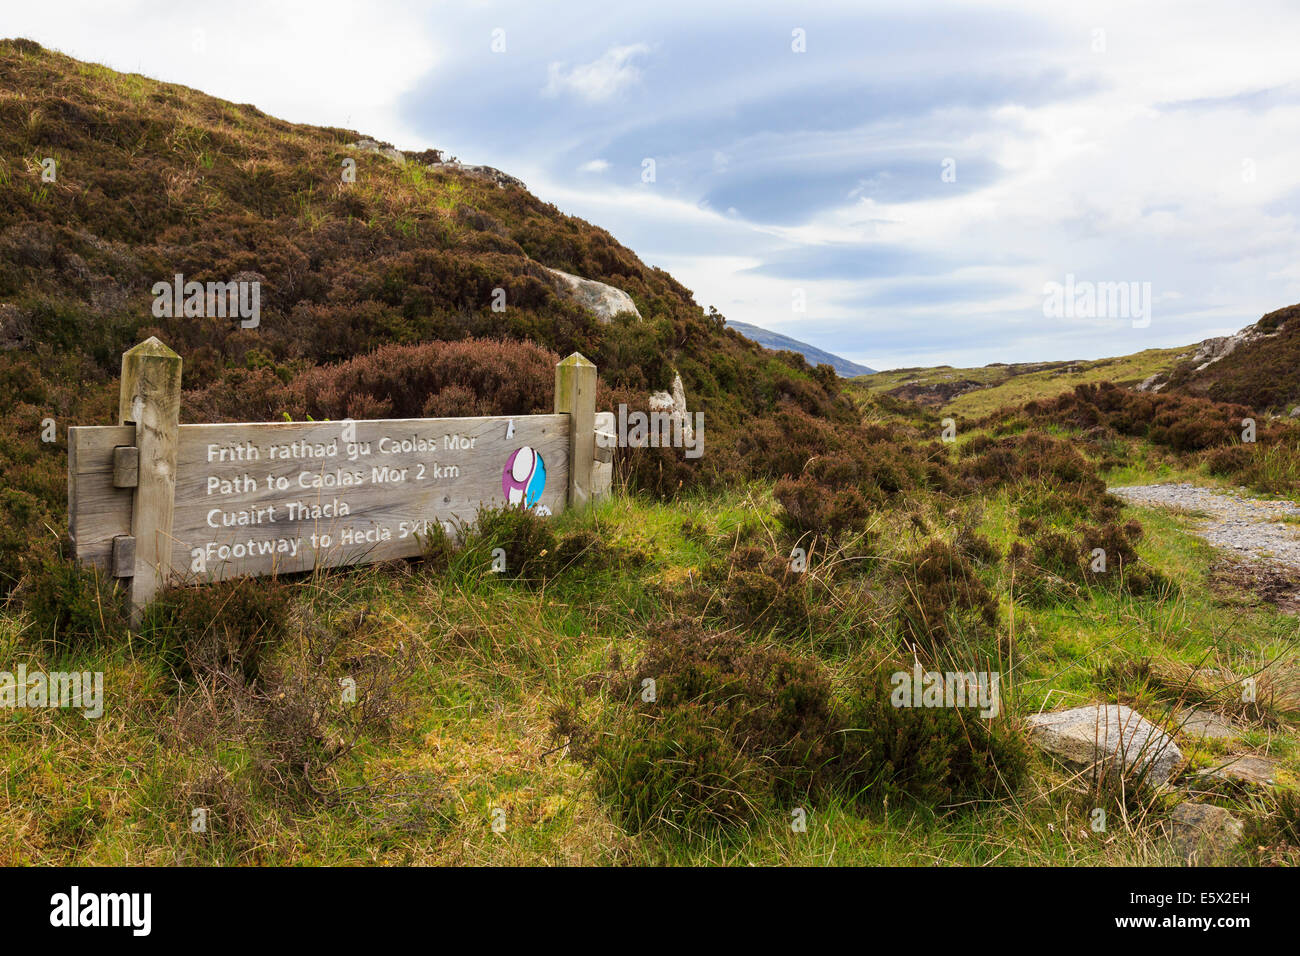 Bilingual Gaelic sign for footpaths to Caolas Mor and Hecla near Loch Sgioport South Uist Outer Hebrides Western - Stock Image